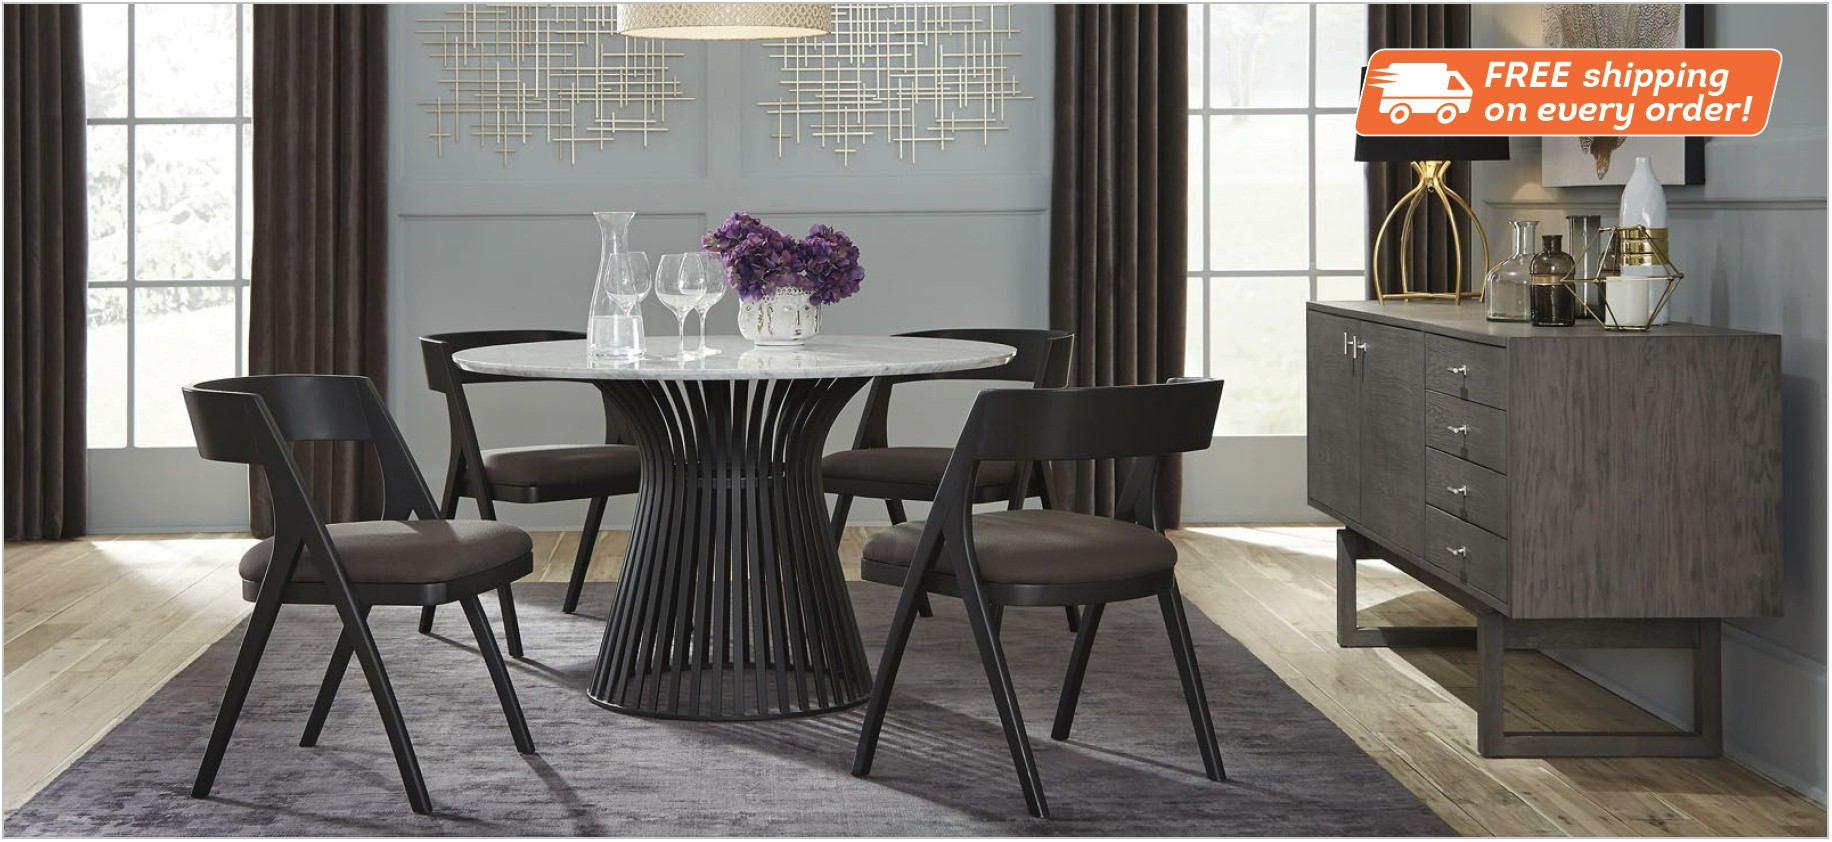 Coleman Dining Room Furniture